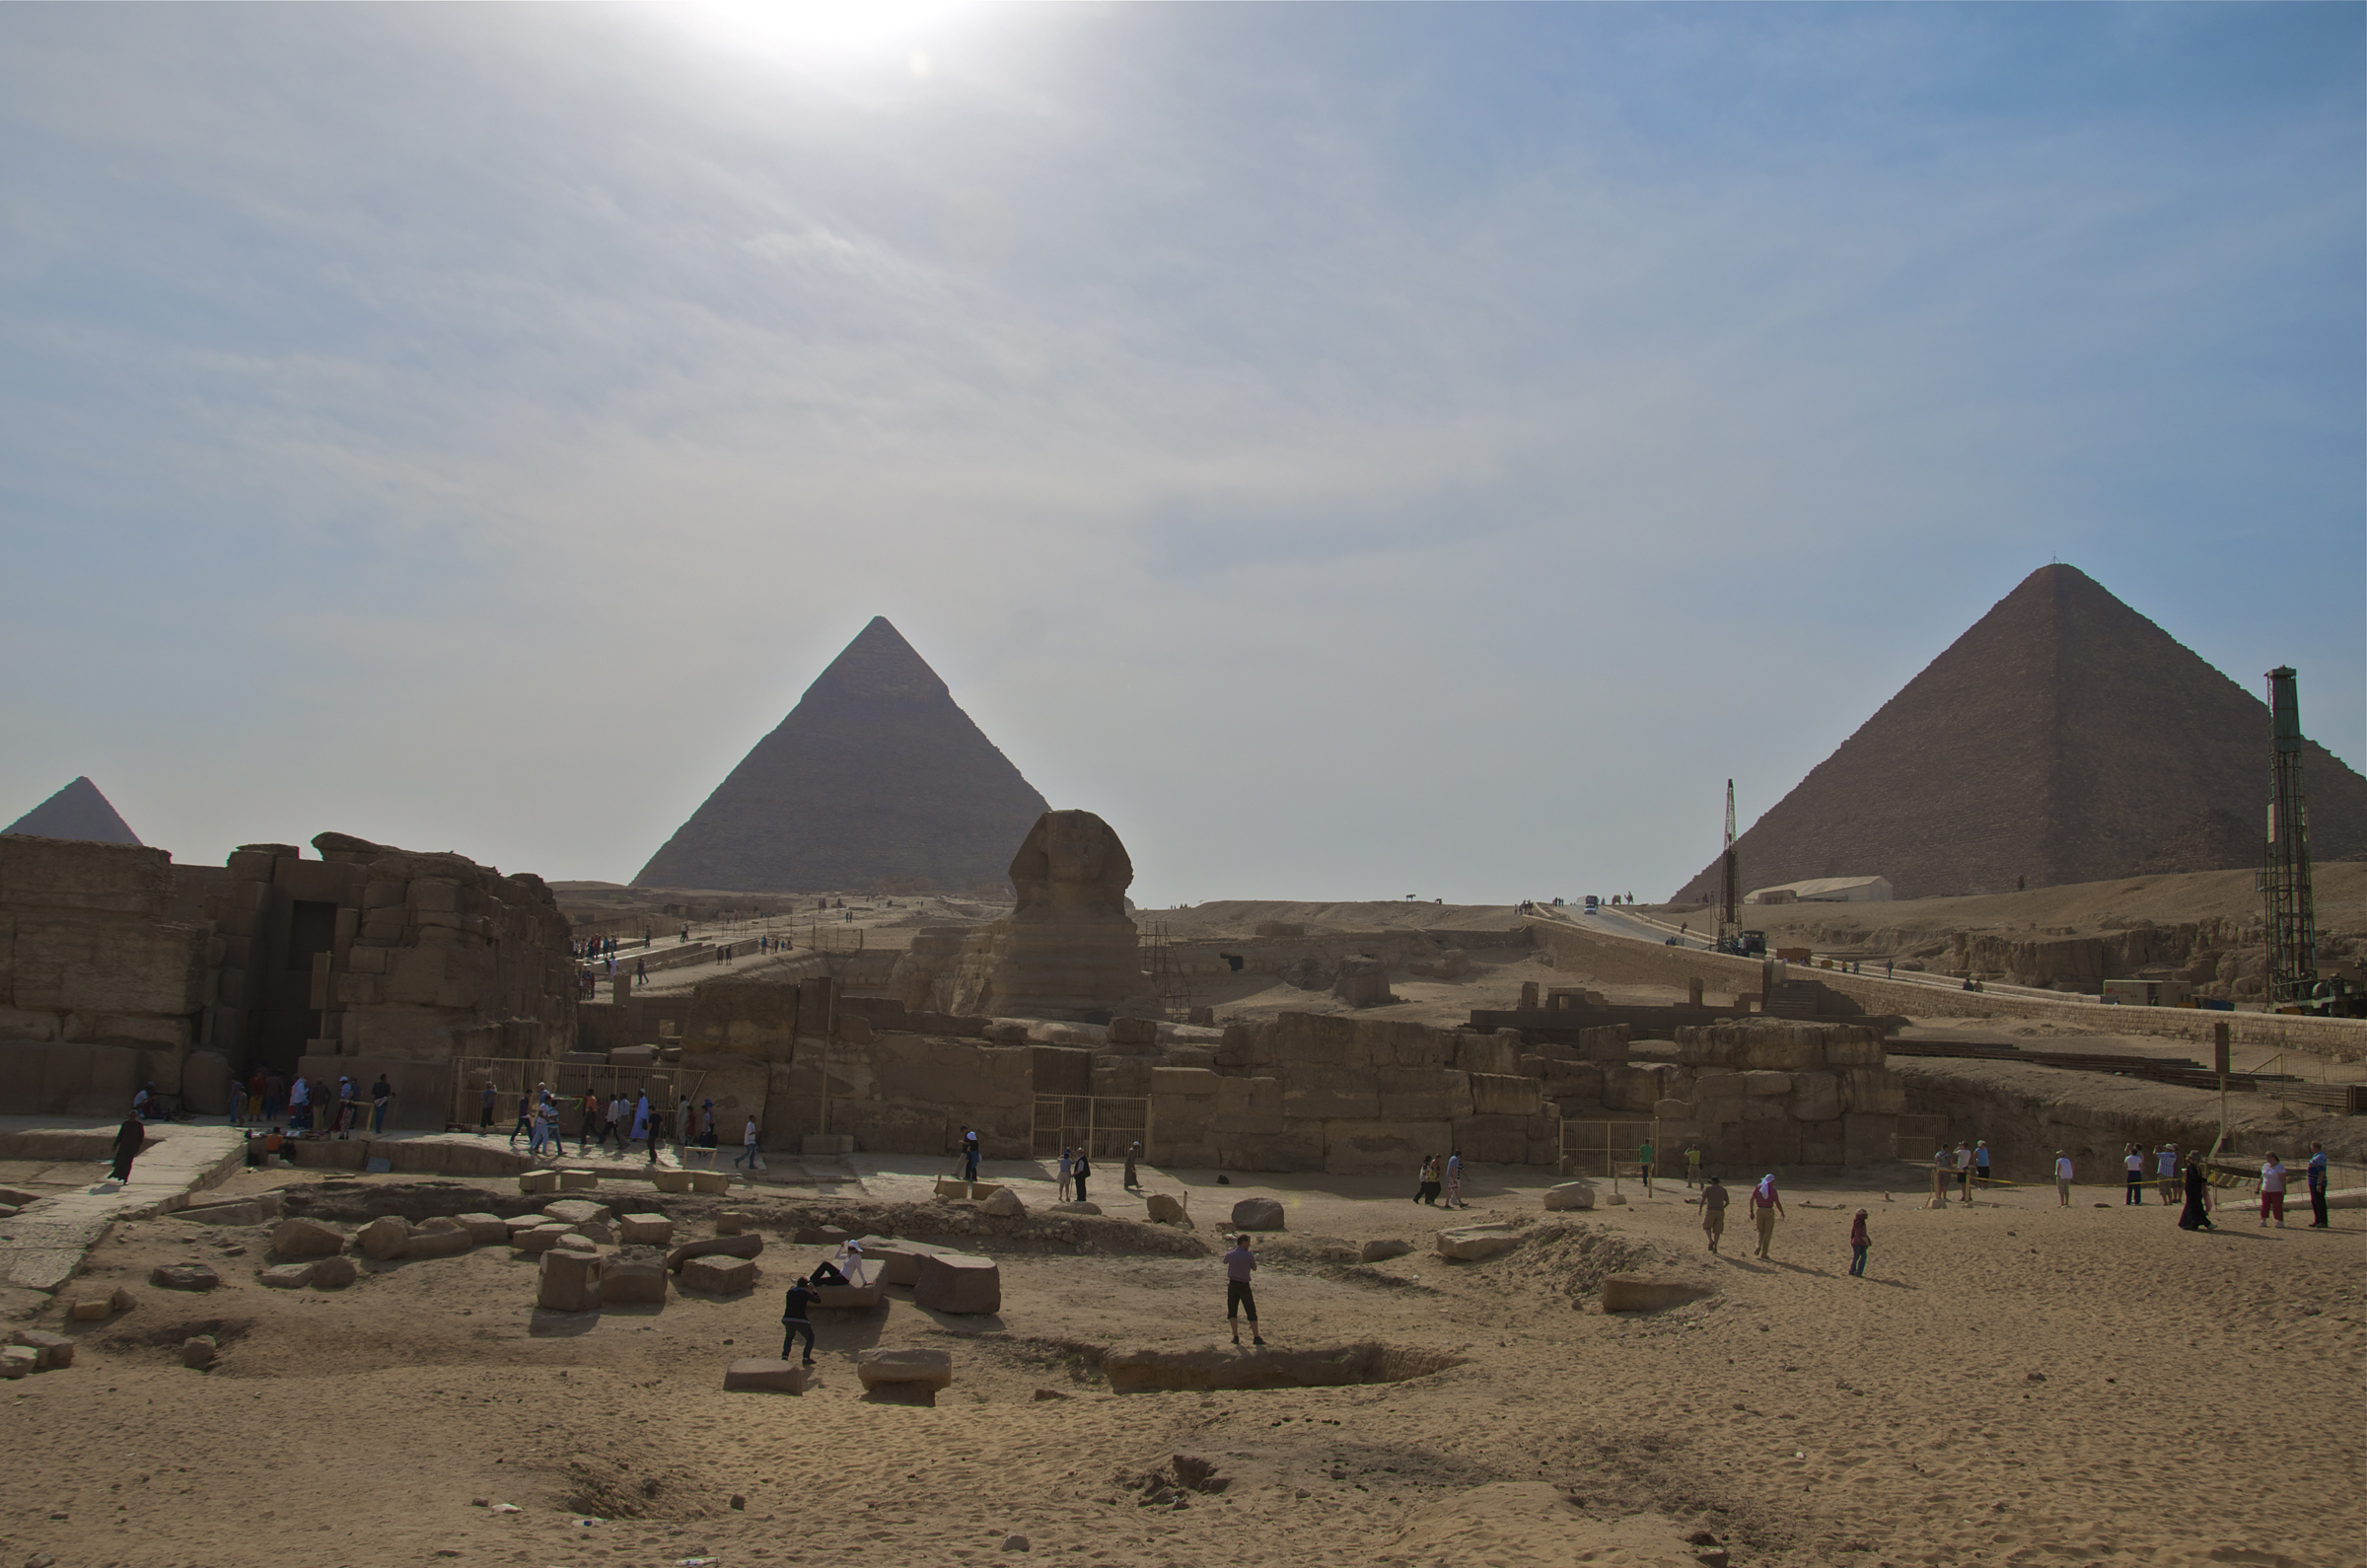 Pyramids with Sphinx_Small.jpg